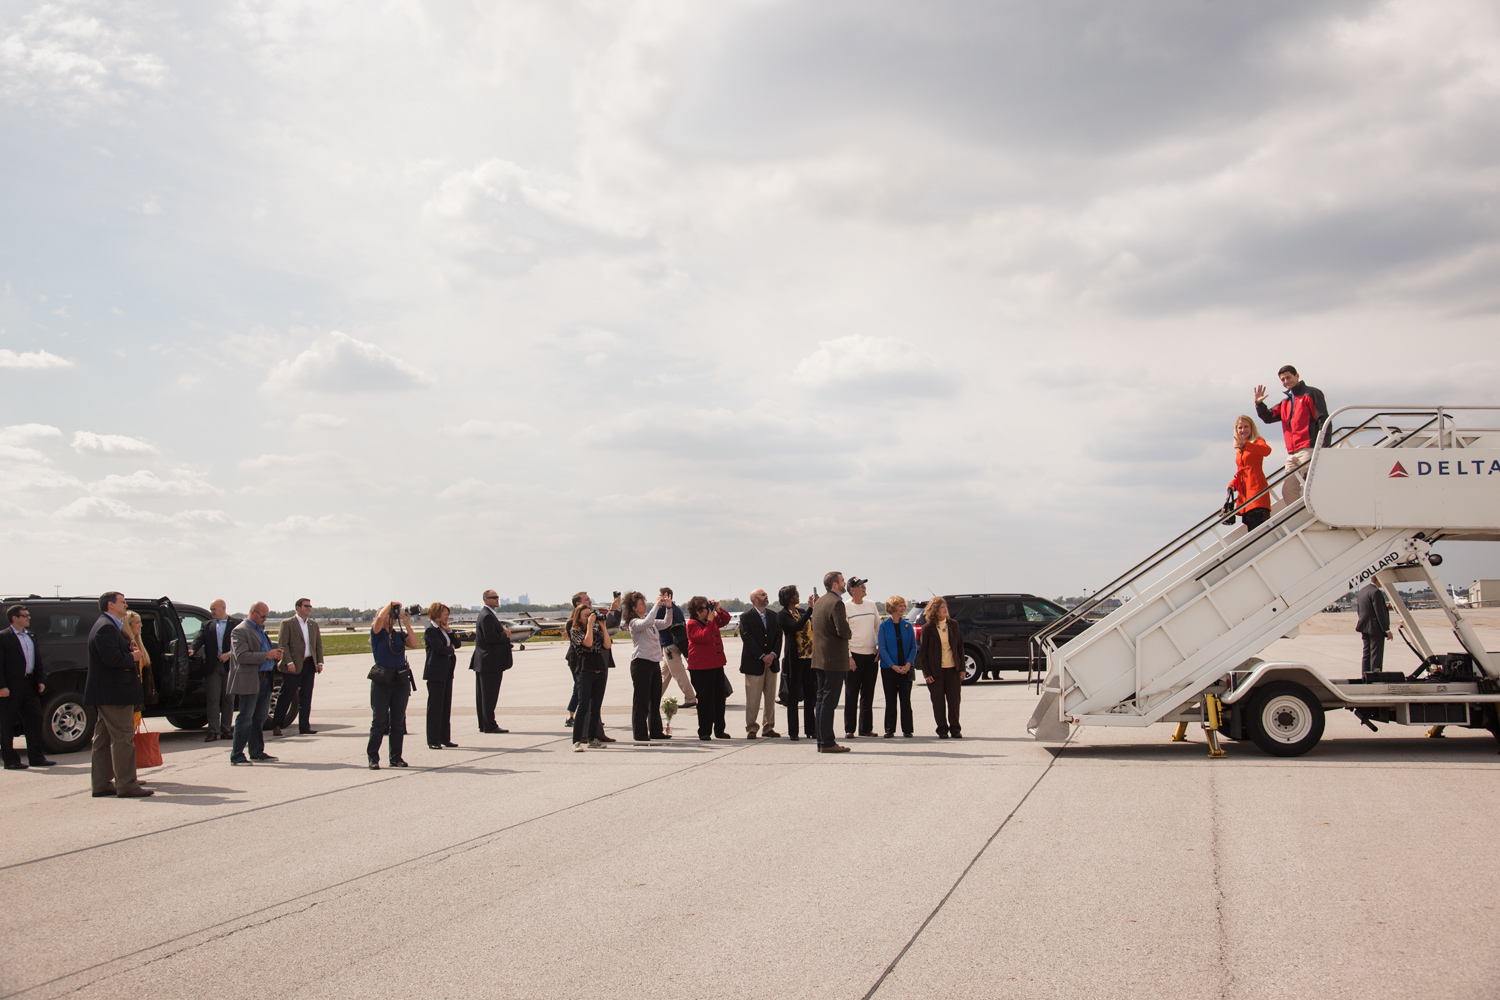 Paul Ryan and his wife exit their plane in Colombus, Ohio. Sept. 29, 2012.